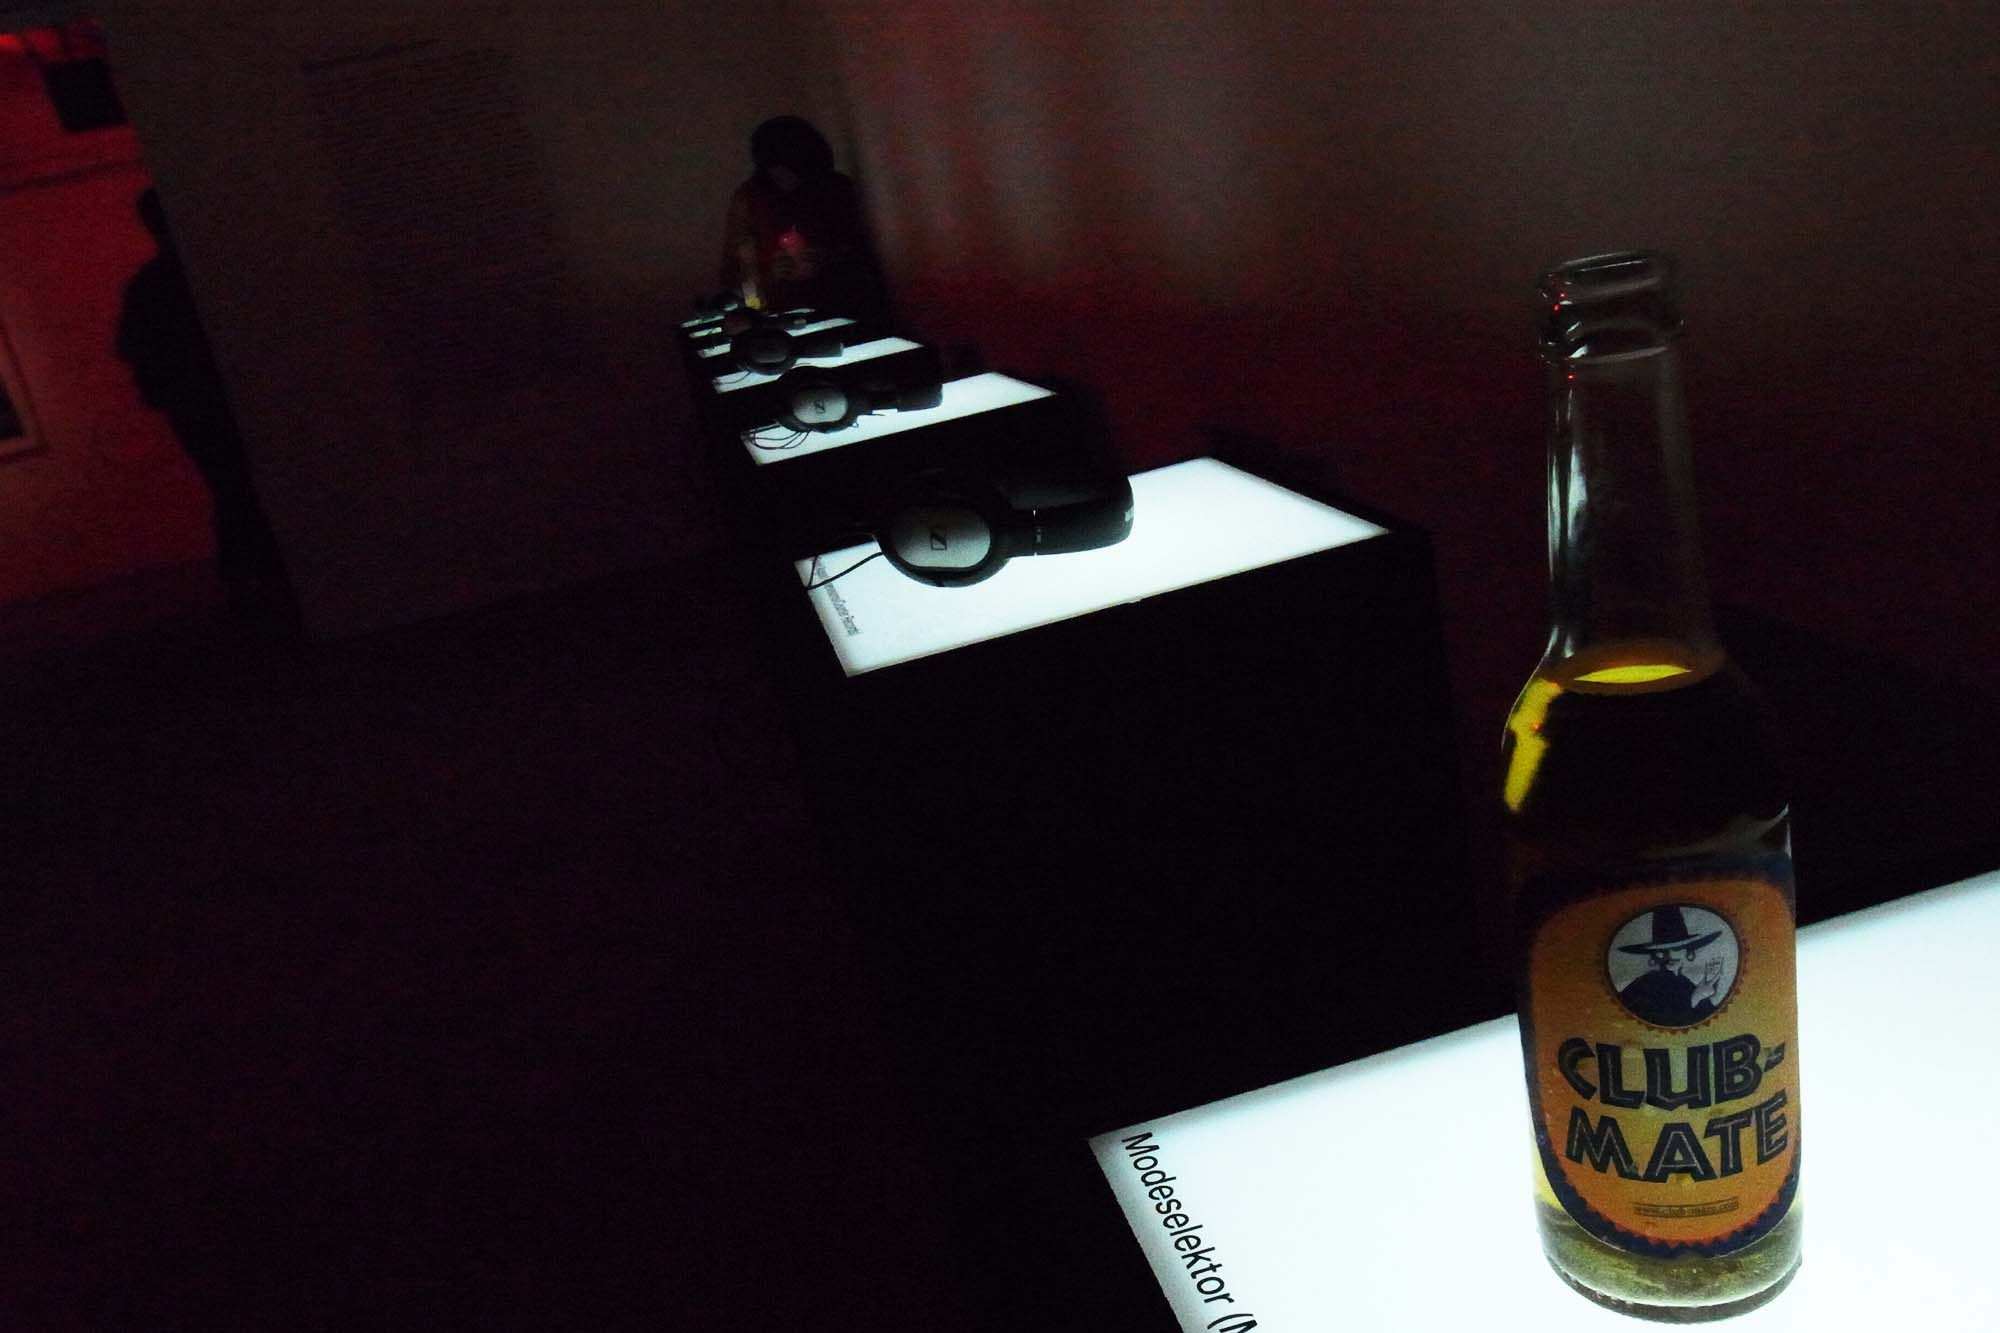 an-exhibition-of-electronic-music-and-photography-from-berlin-06